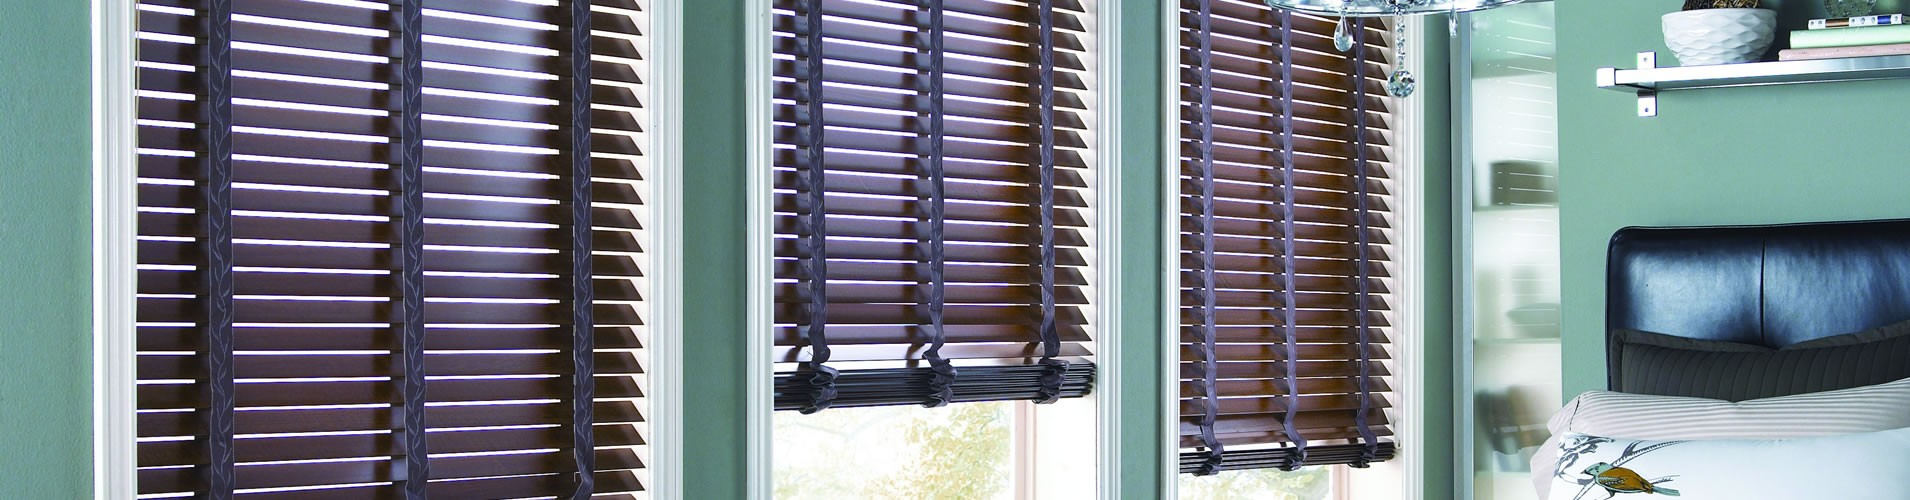 quality offer wood blind products finishes den furniture our mice cordlock window usa coverings cwclassics blinds